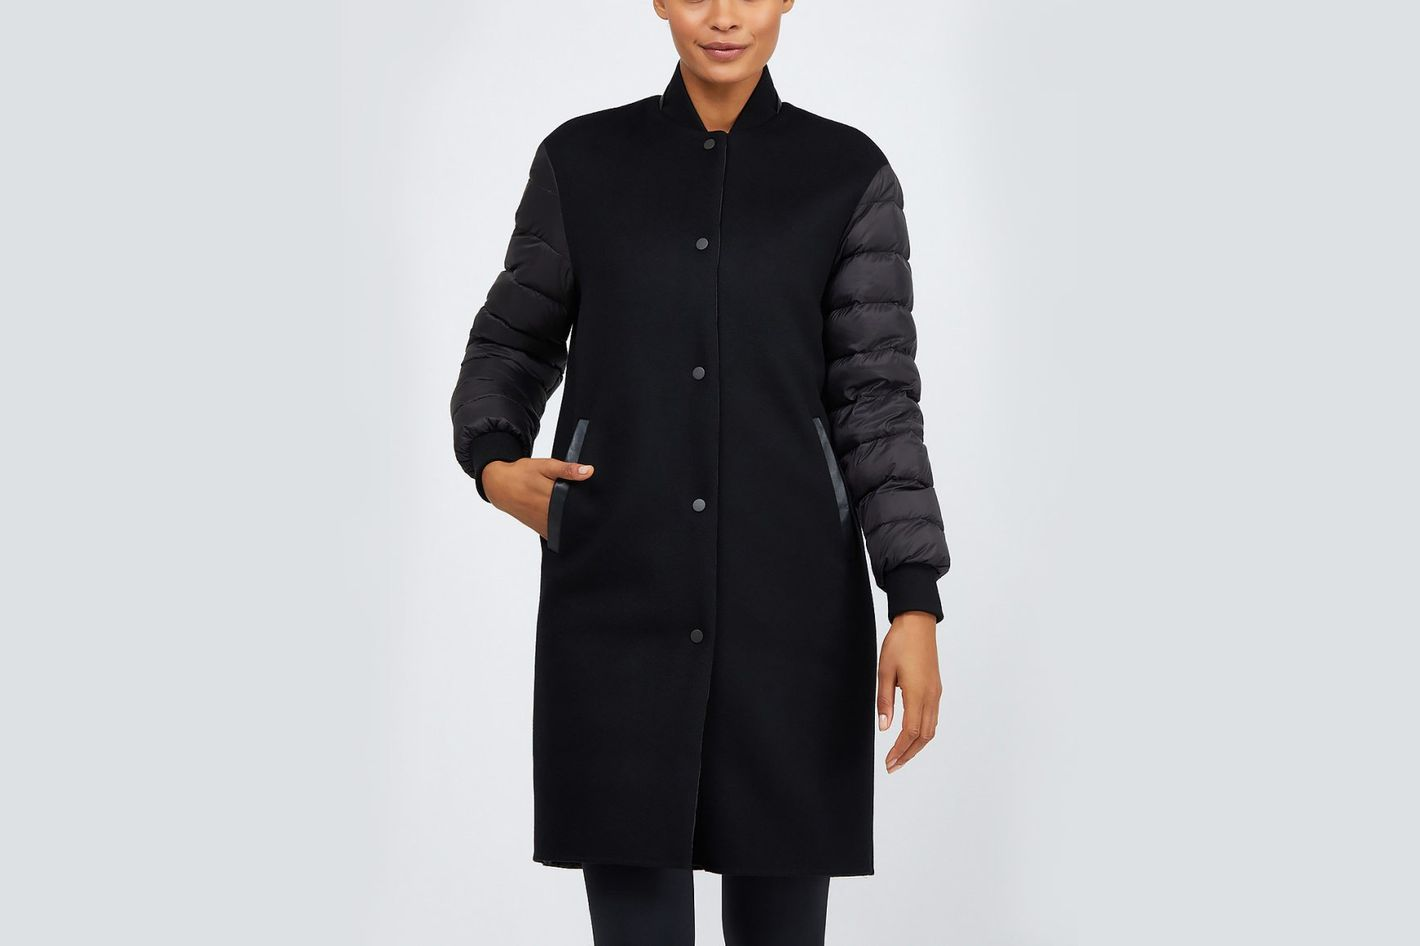 Mackage Marlon Coat